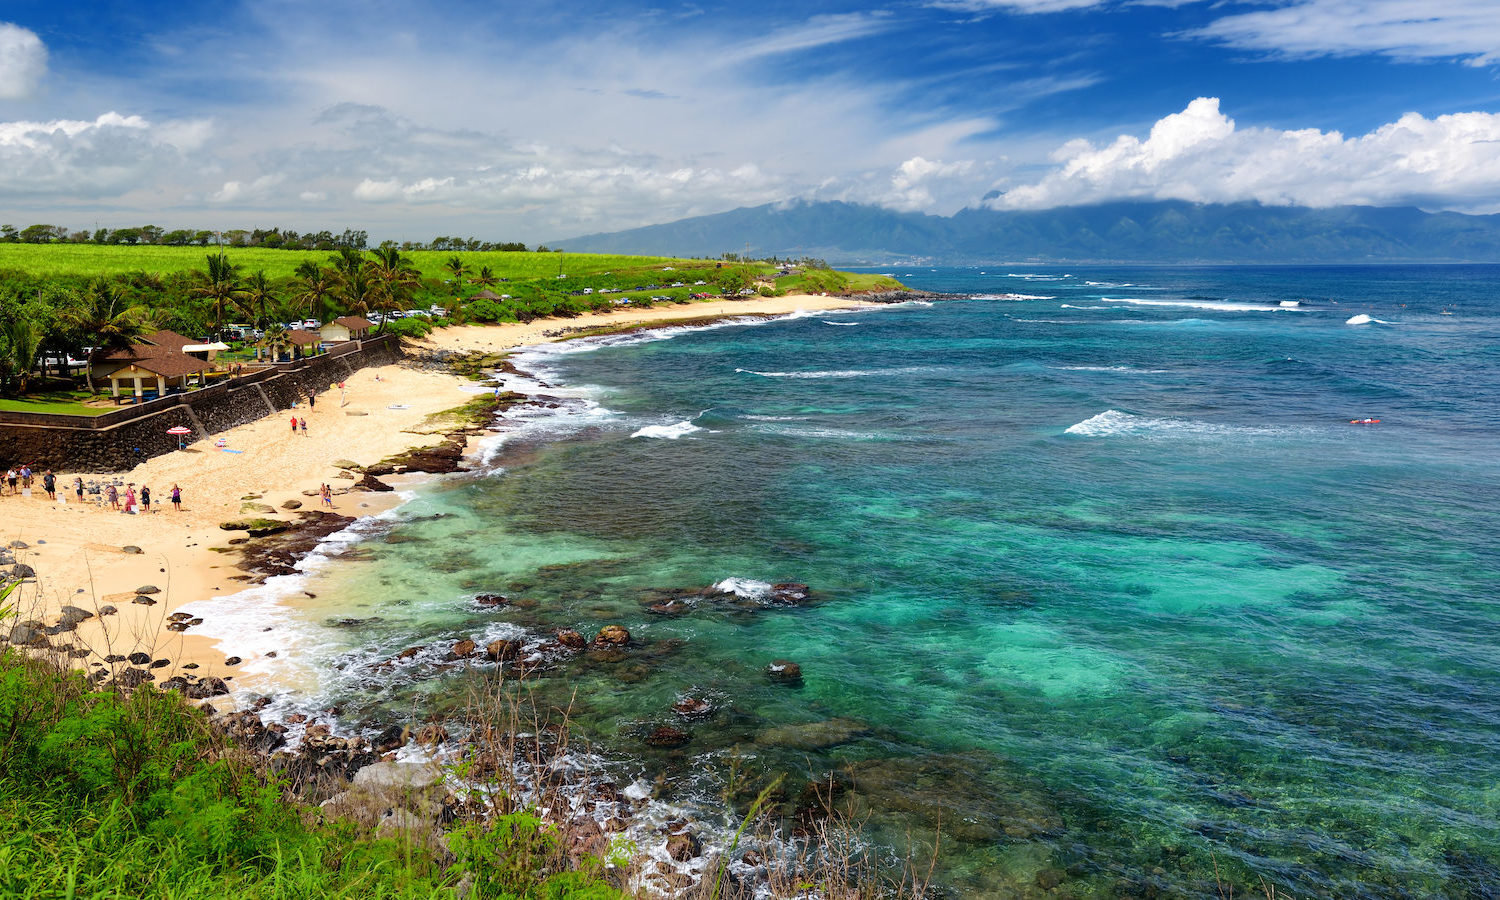 11Hookipa Beach, Maui GyPSy Guide Narrated Driving Tour App